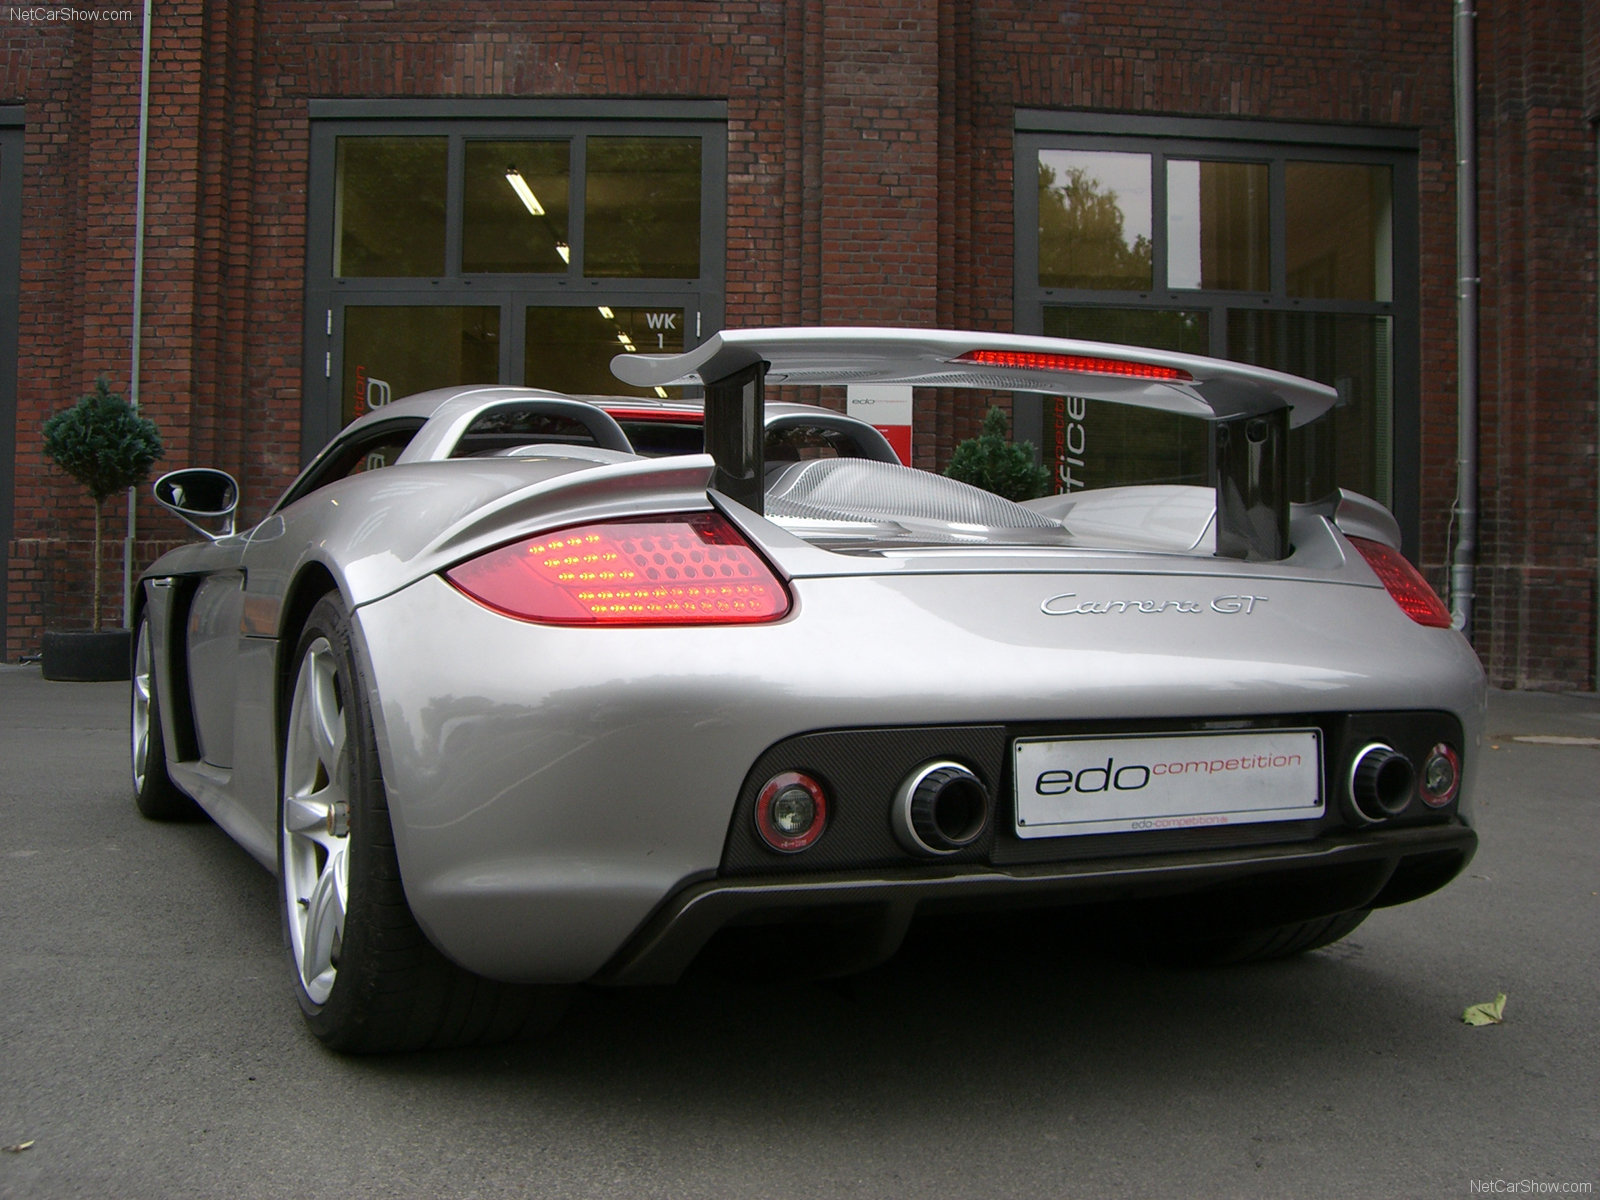 Edo Competition Porsche Carrera GT photo 50075